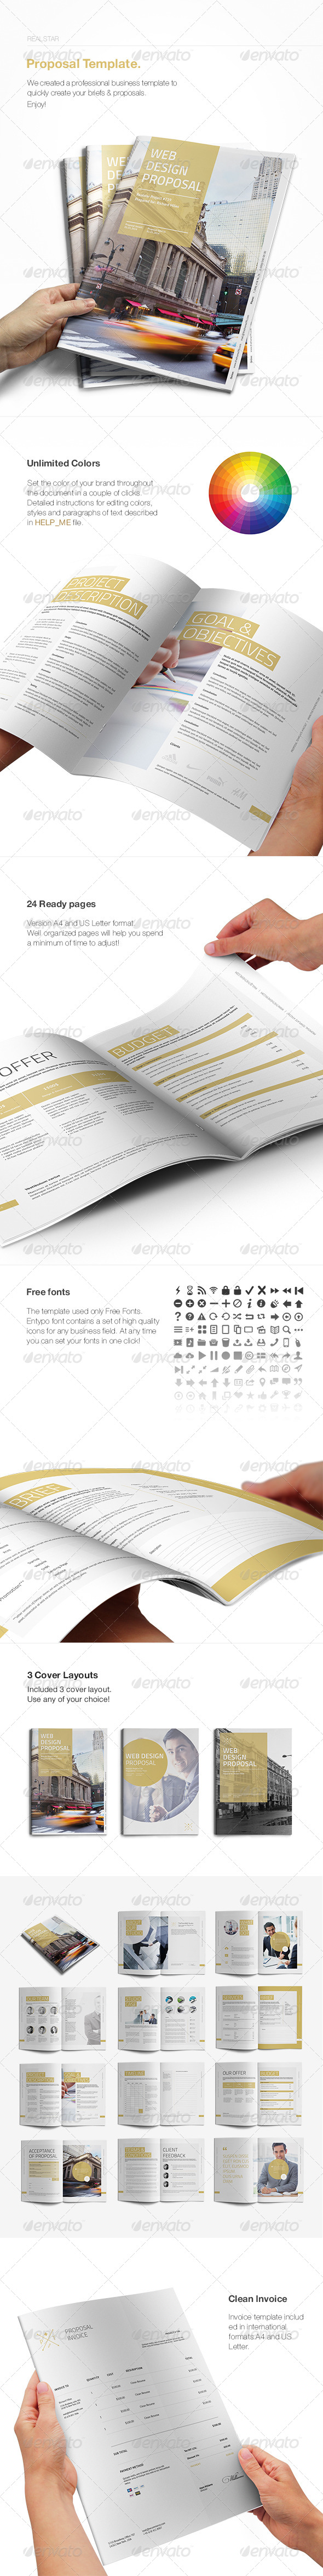 GraphicRiver Proposal Template II 8372647